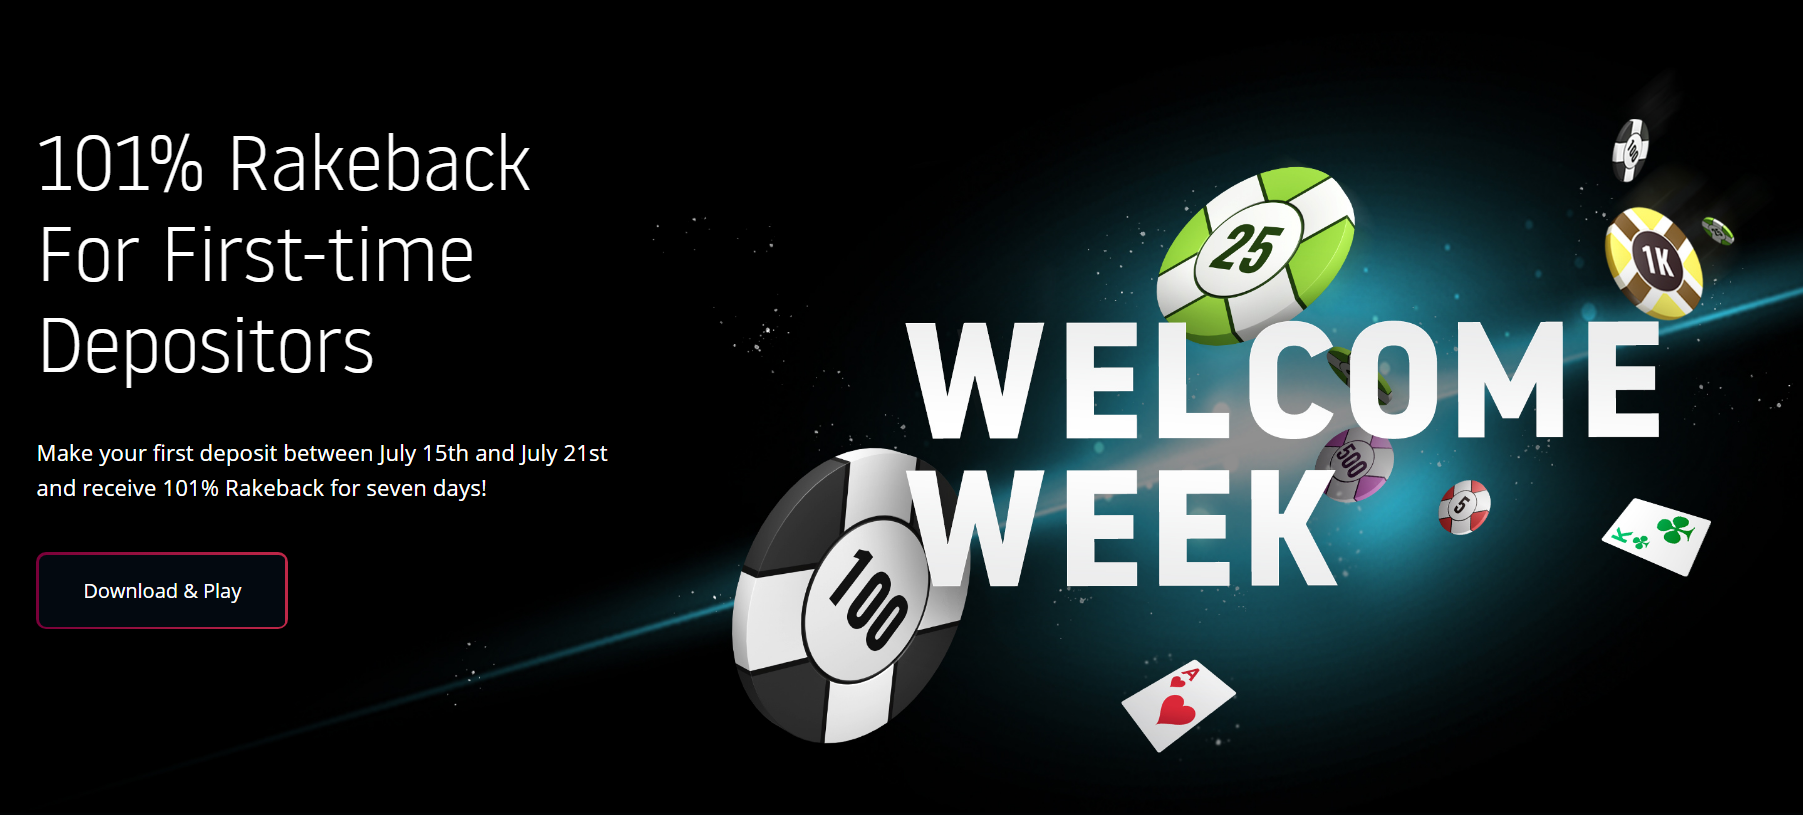 Run It Once Poker has made an all-out effort to boost its traffic by launching a string of new promotions.